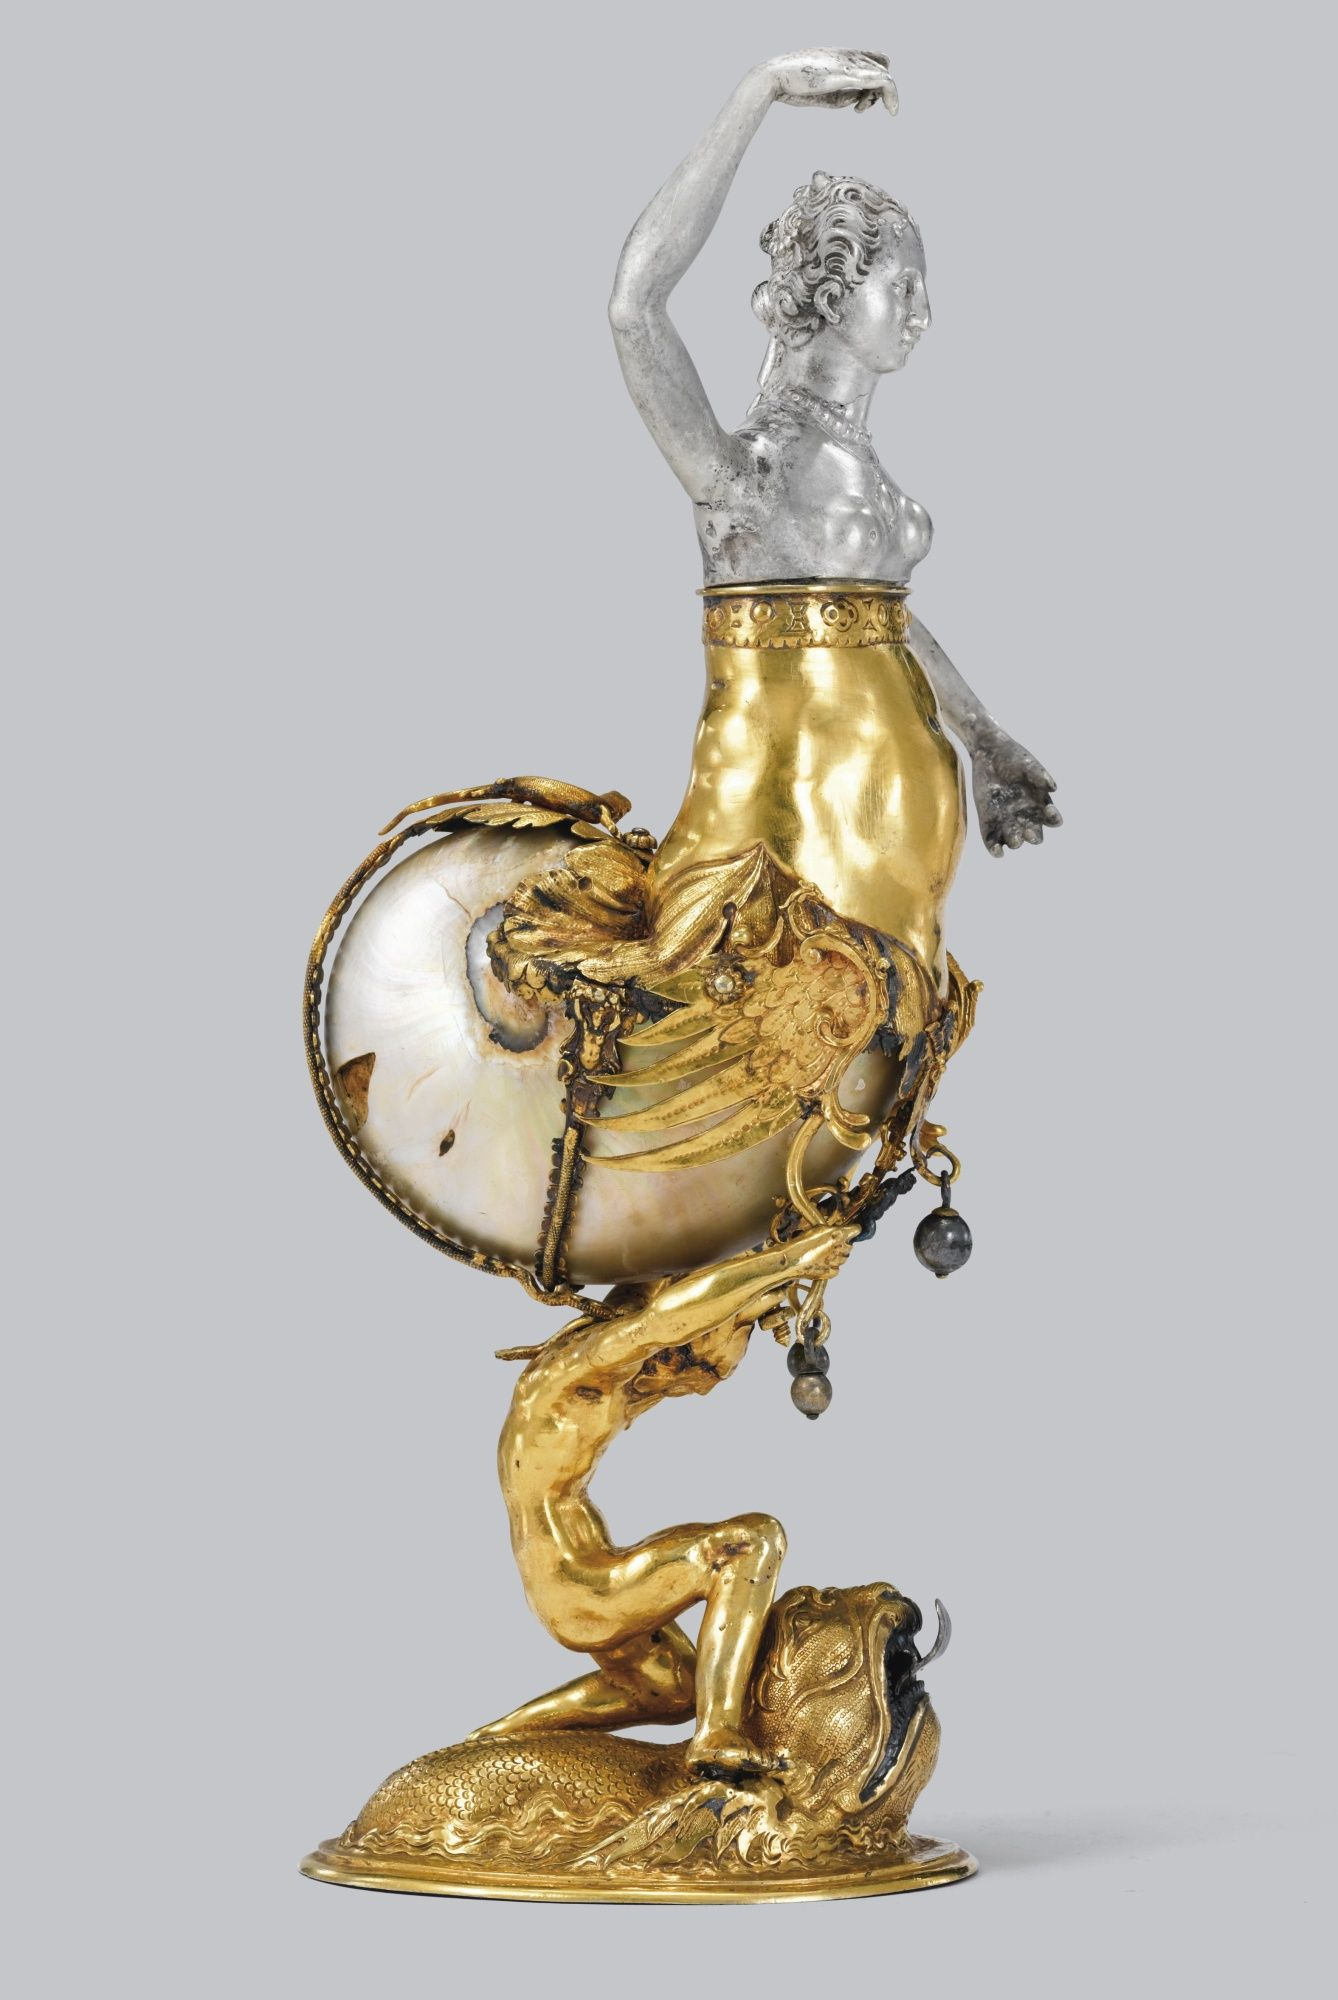 A LARGE NAUTILUS SHELL WITH PARCEL-GILT SILVER MOUNTS, PROBABLY GERMAN, CIRCA 1880